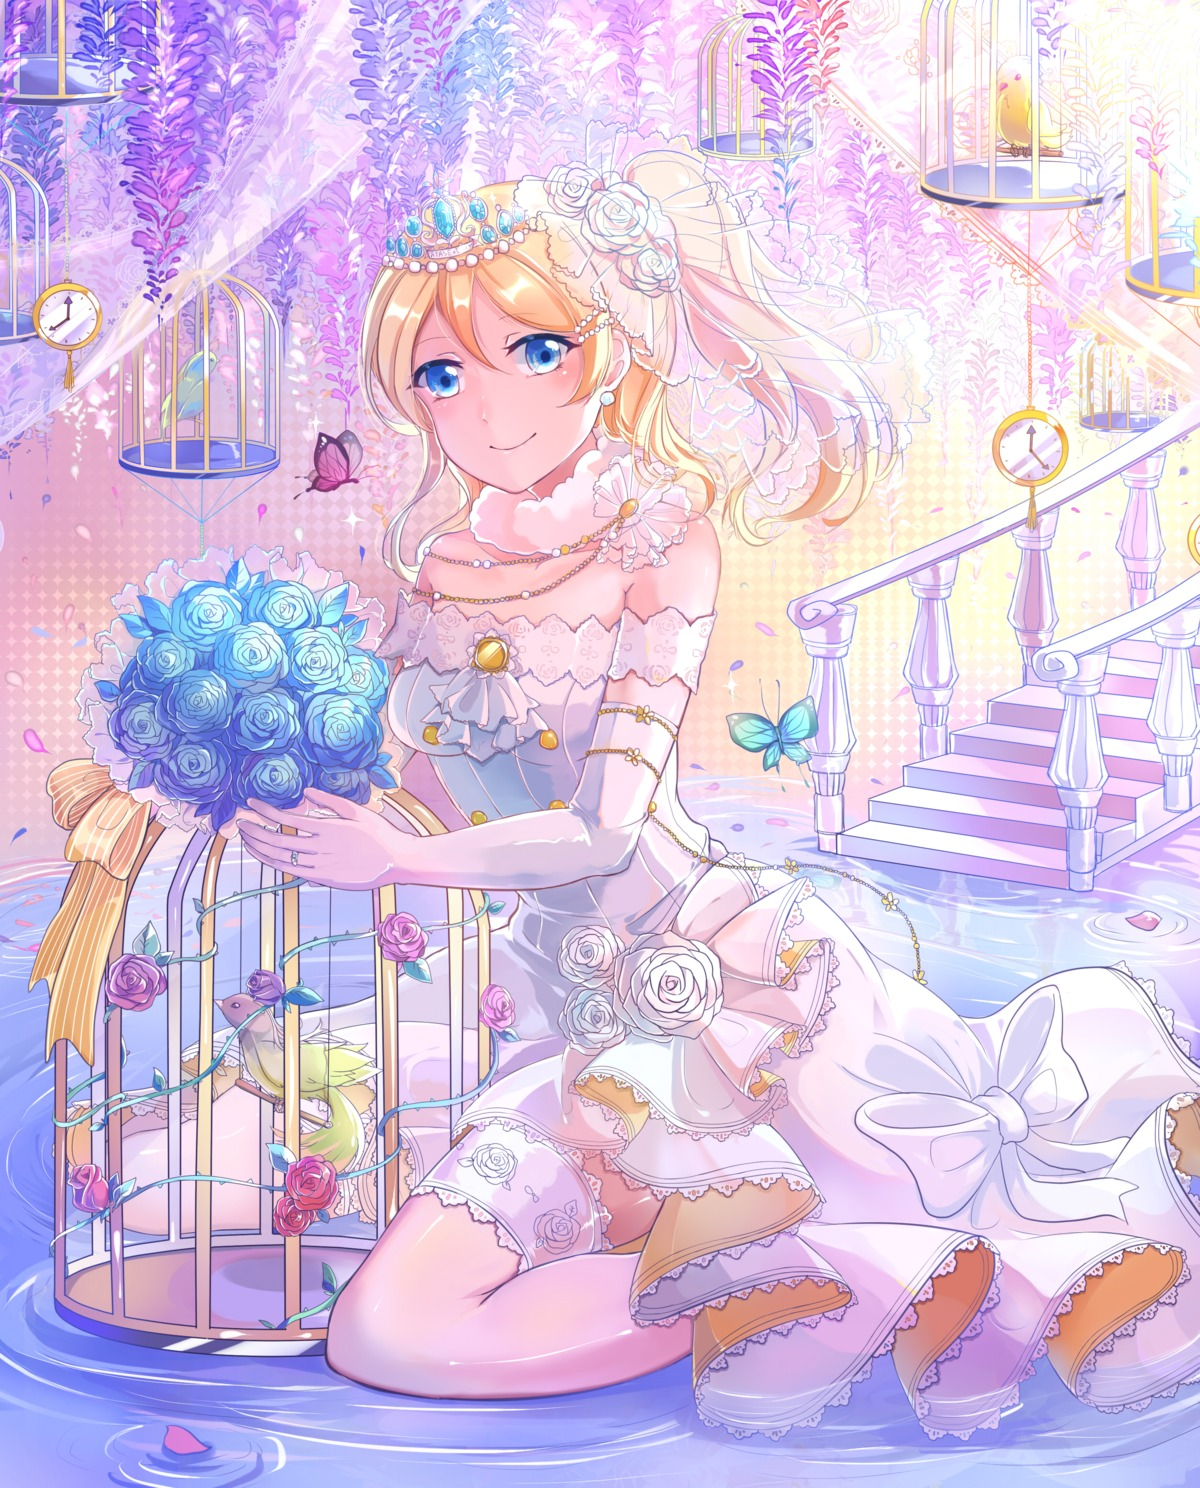 ayase_eli dress love_live! thighhighs wedding_dress xinghuo